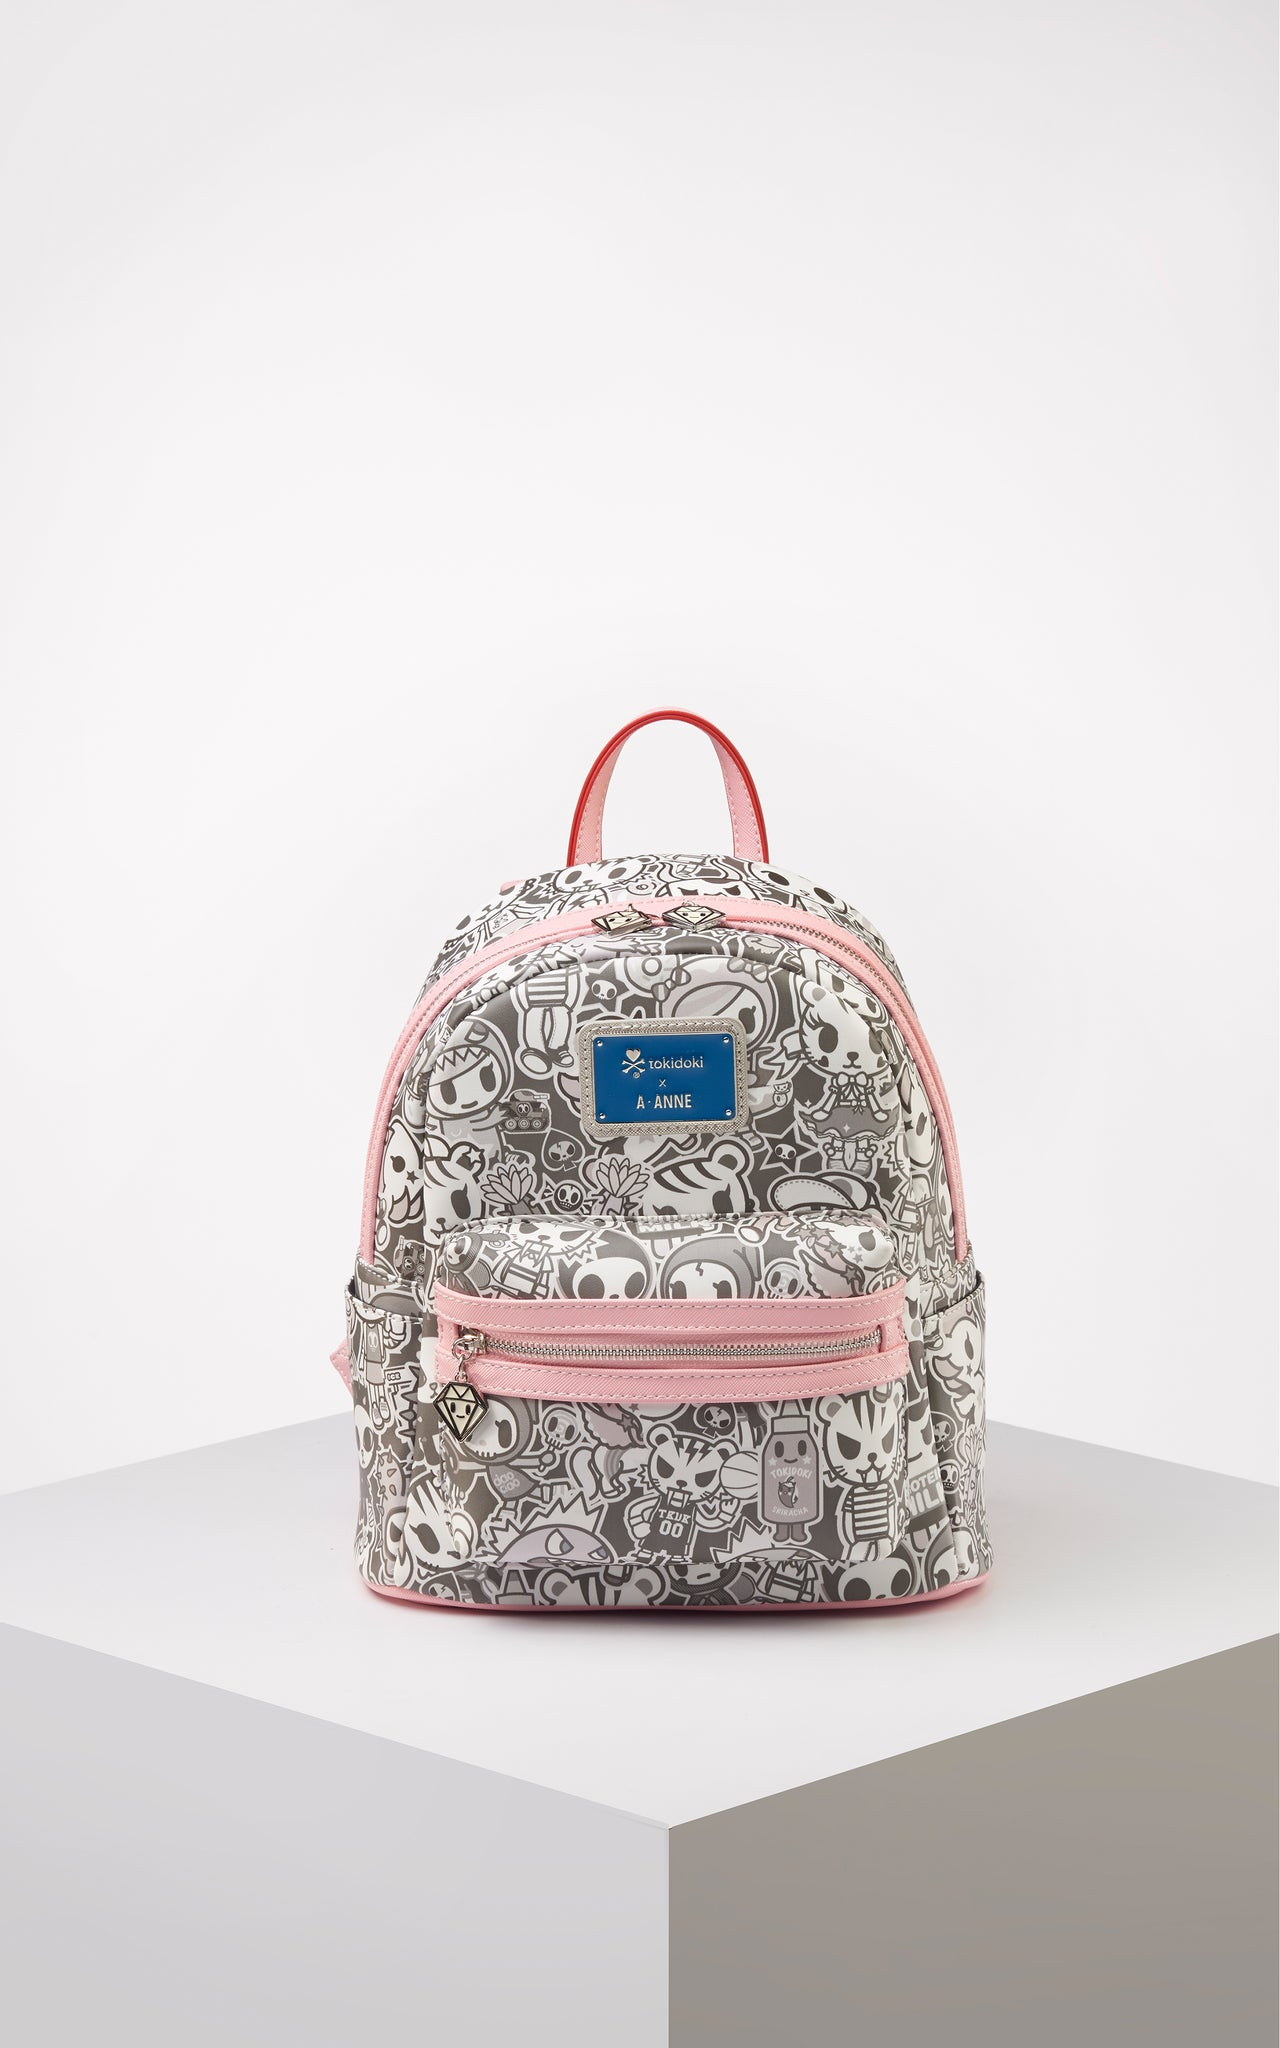 TDxAN Monochrome No. 1 Backpack (Pink) - A.Anne, Tokidoki, Ashlyn Anne, Fashion, Handbags, School, Bag, Accessories